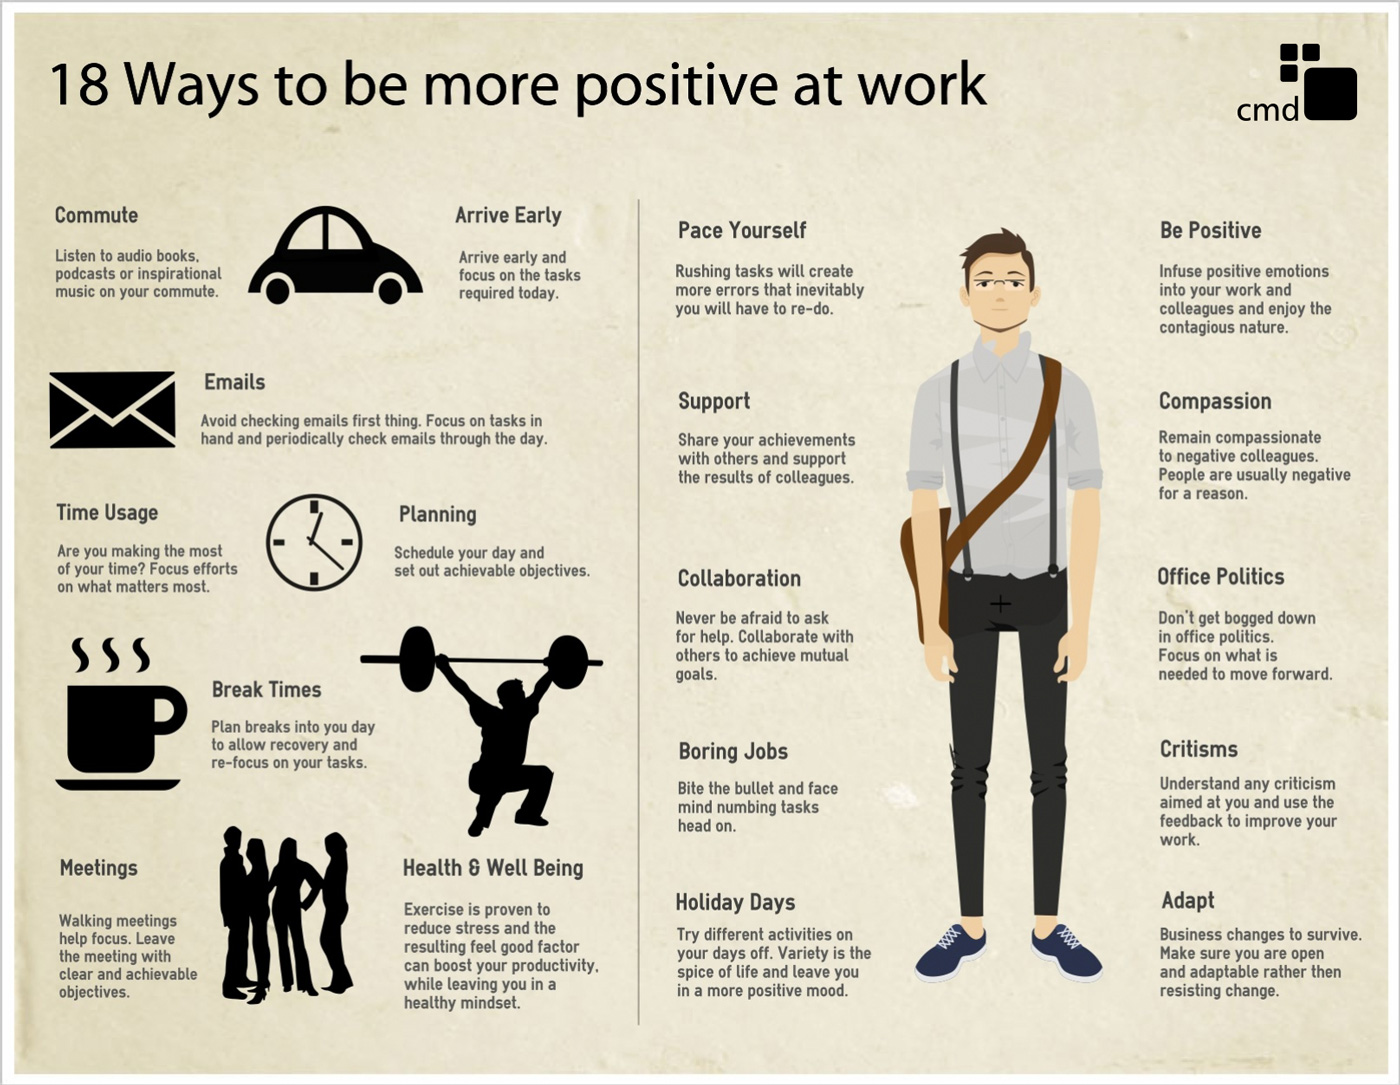 tips on how to be more positive at work